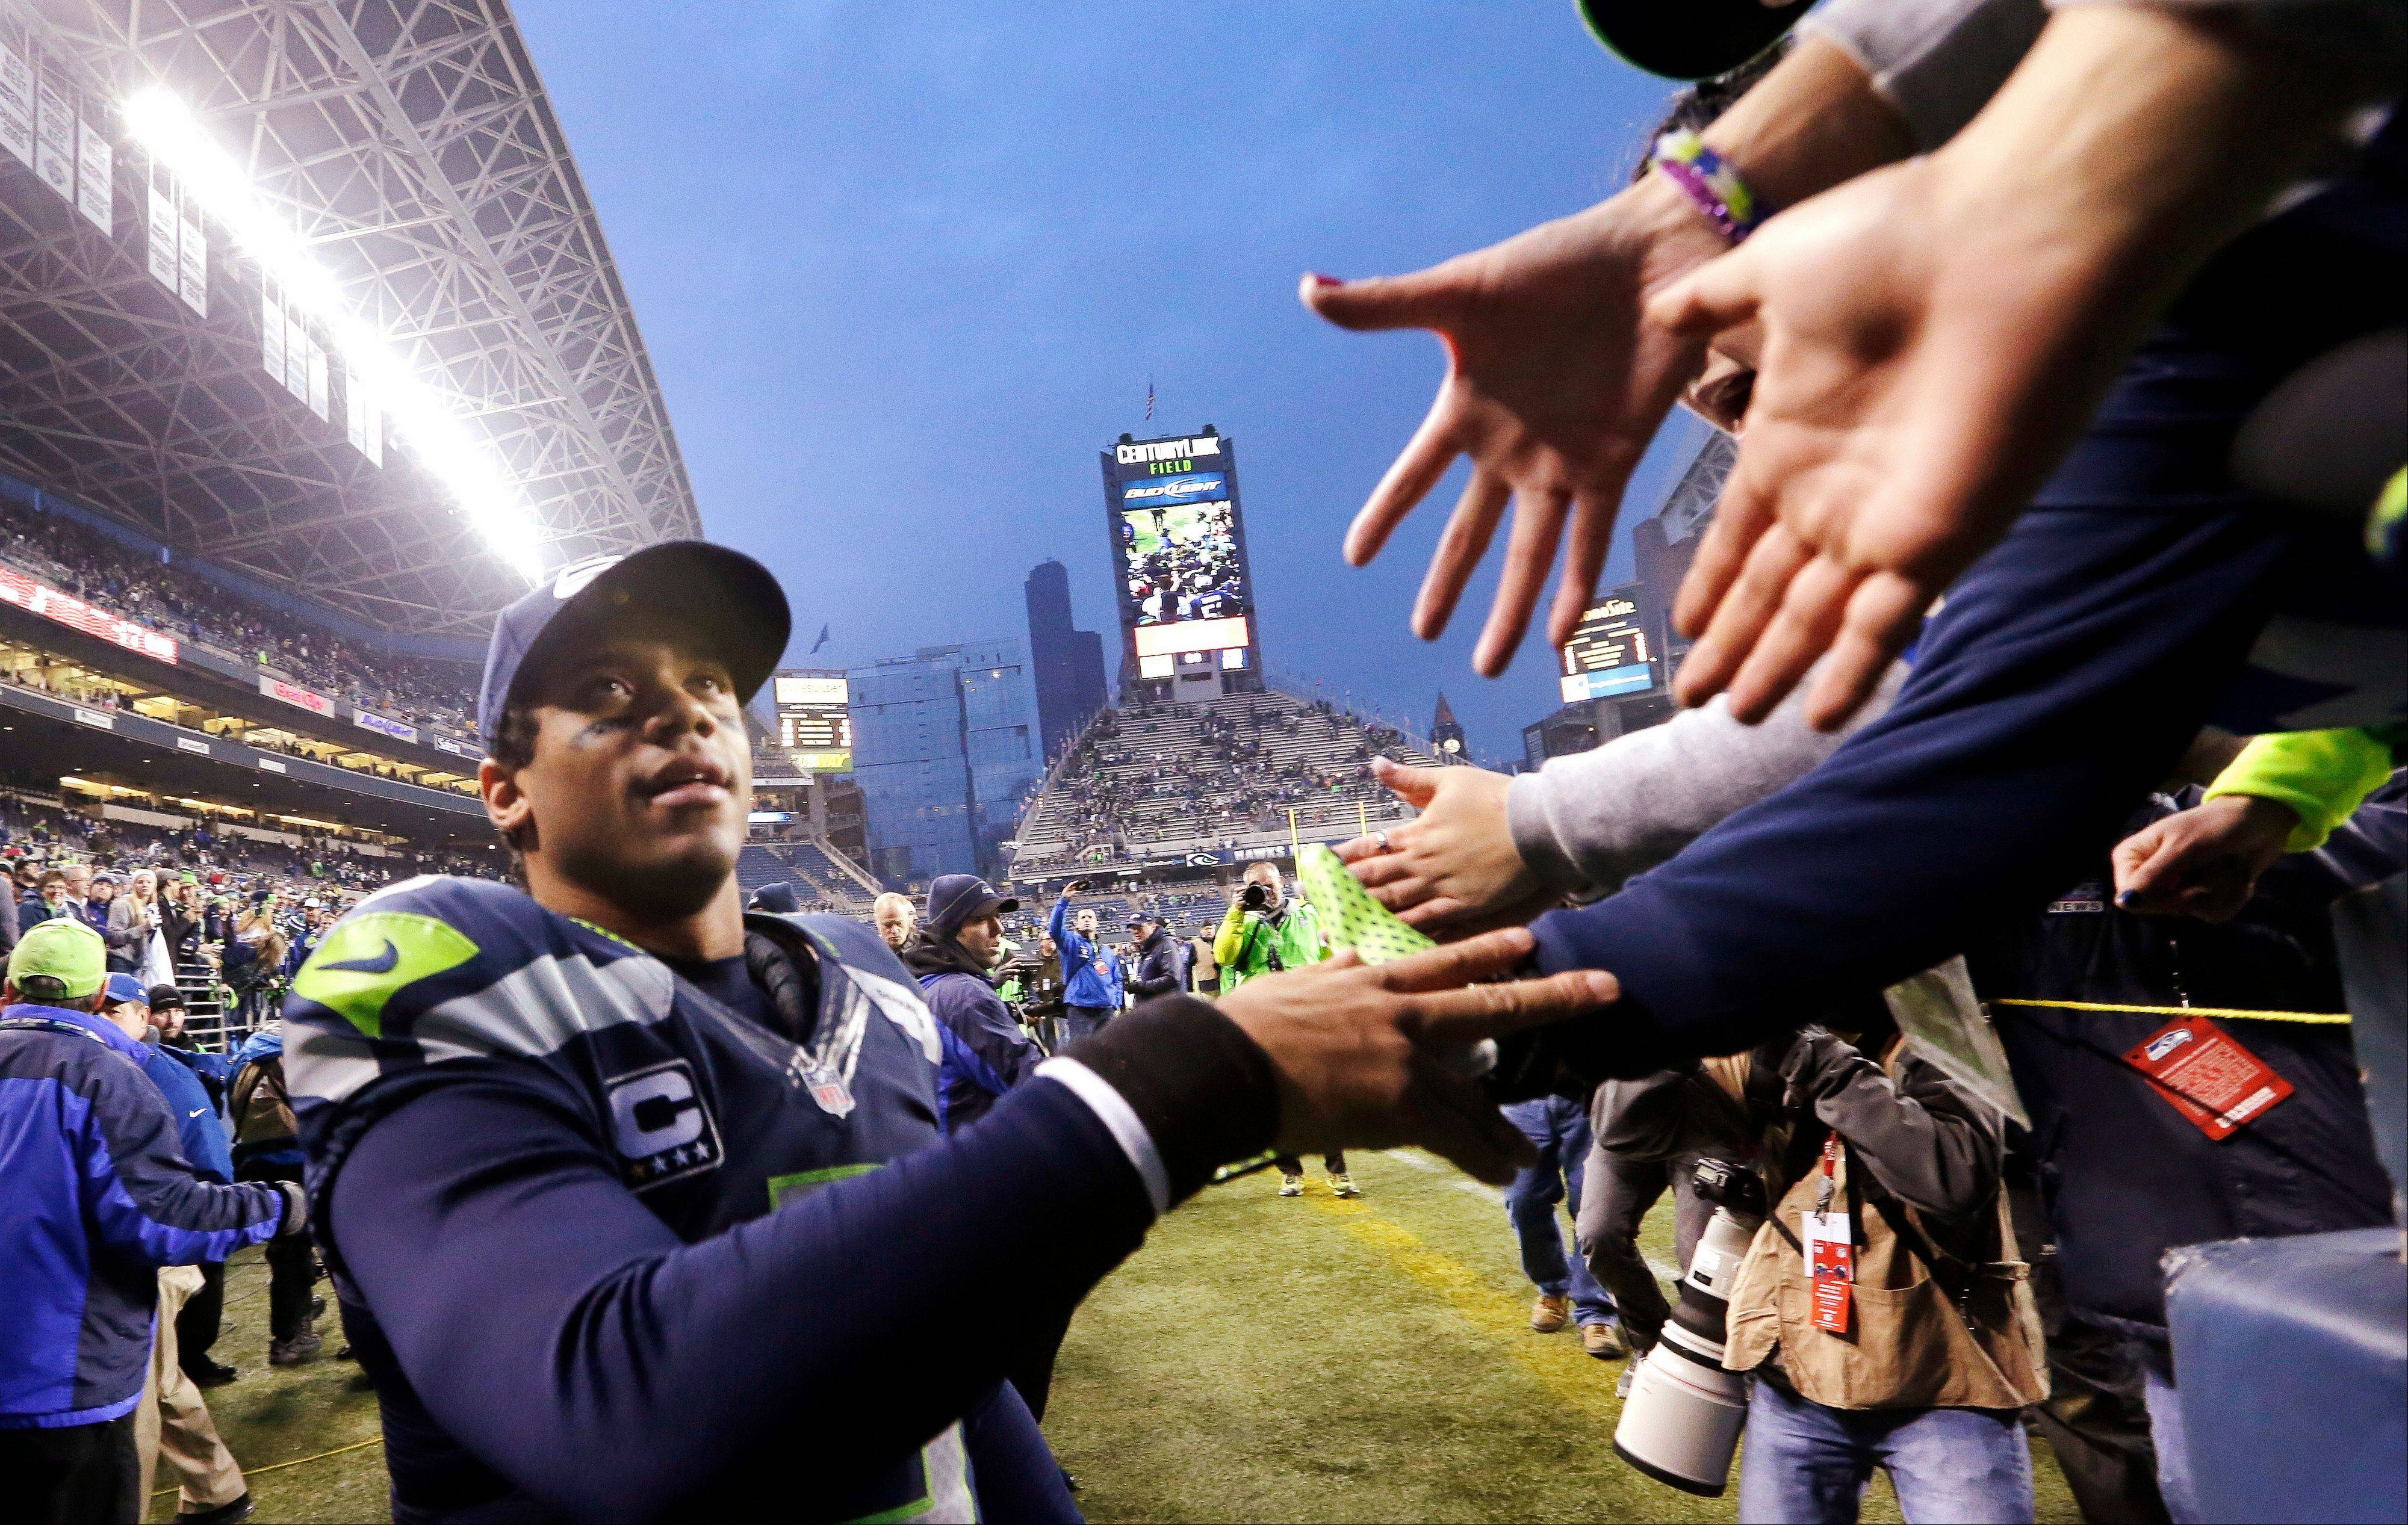 Seahawks quarterback Russell Wilson greets fans as he leaves the field after the team beat the St. Louis Rams on Sunday in Seattle.